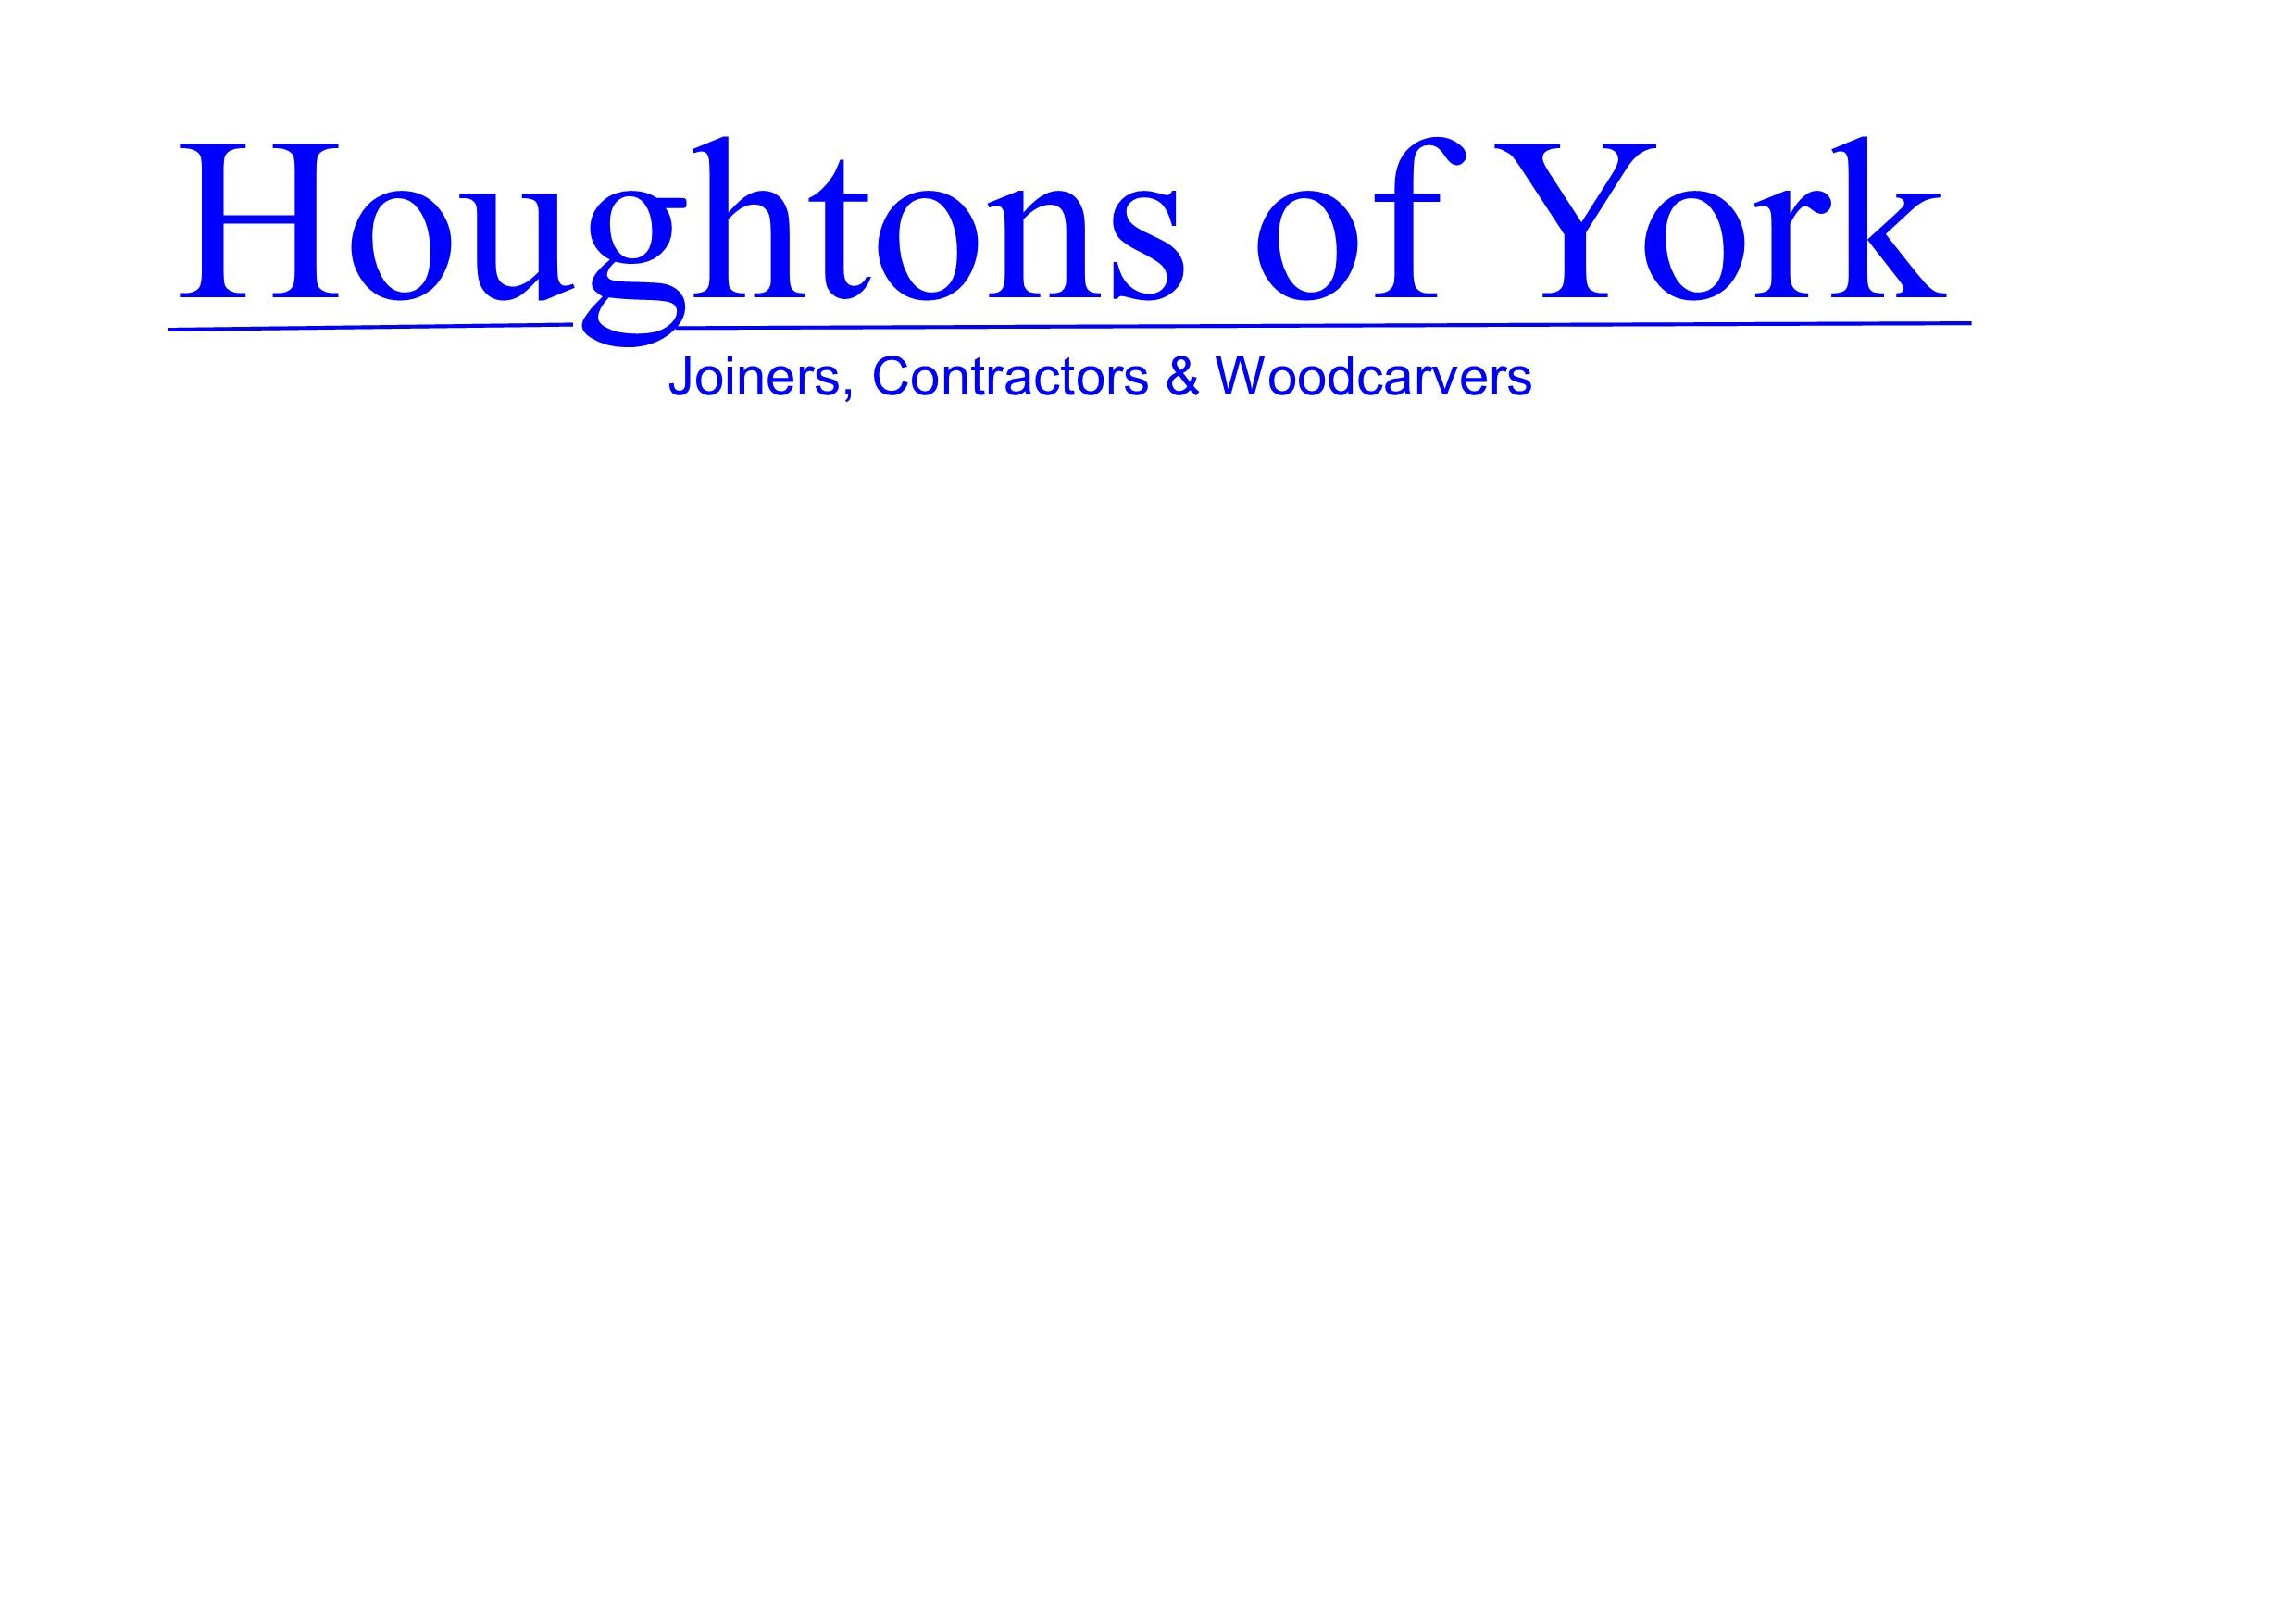 Houghtons of York